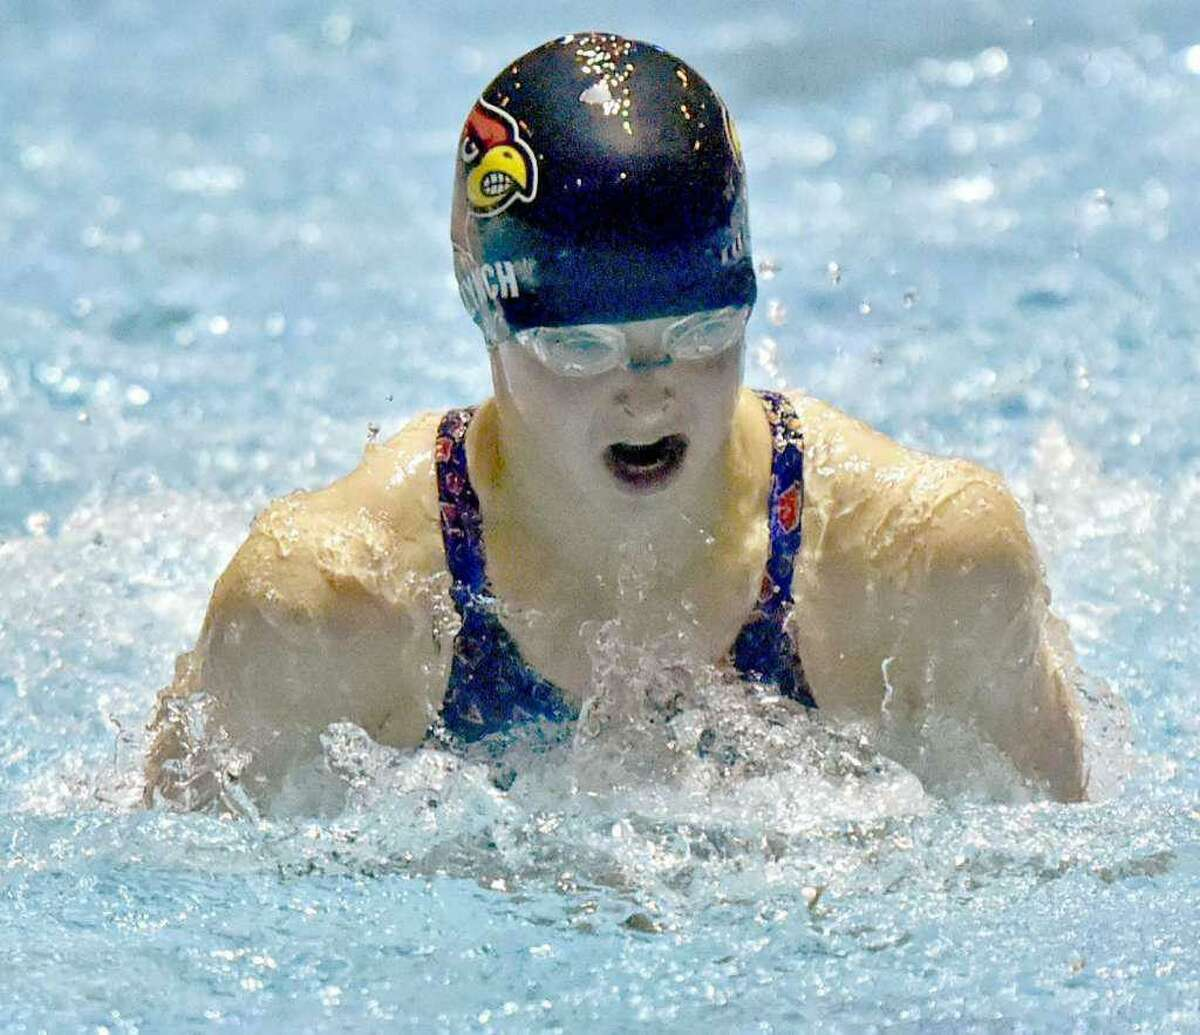 Meghan Lynch will conclude her Cardinals swimming career on Wednesday at the team's FCIAC West Regional Championships. Lynch is a three-time All-America selection and state-record holder and team-record holder in multiple events.